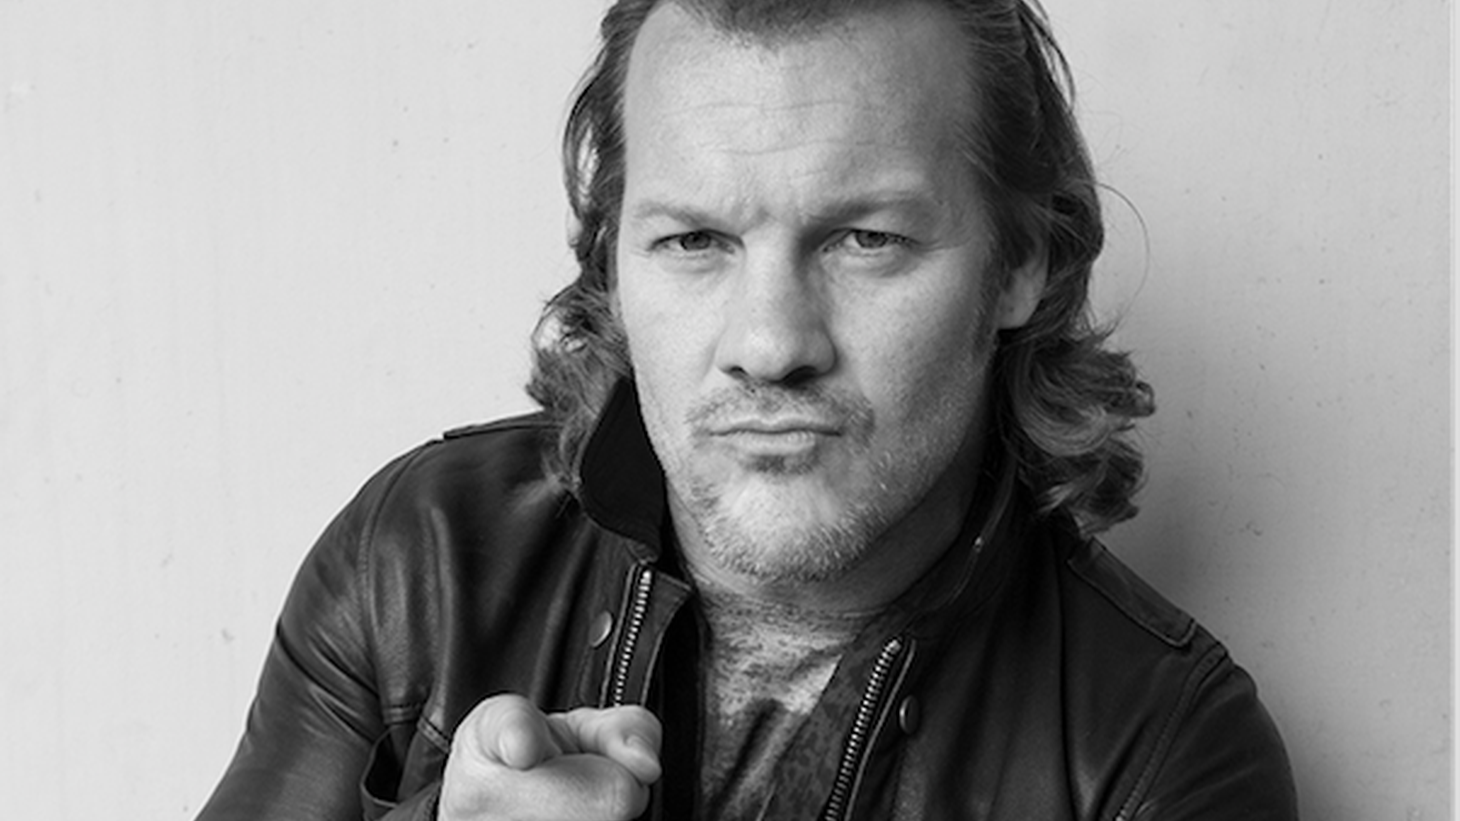 WWE Champion and front for the band Fozzy, Chris Jericho, shares the bands that inspired both of his career paths. He also dedicates a song to his mom!